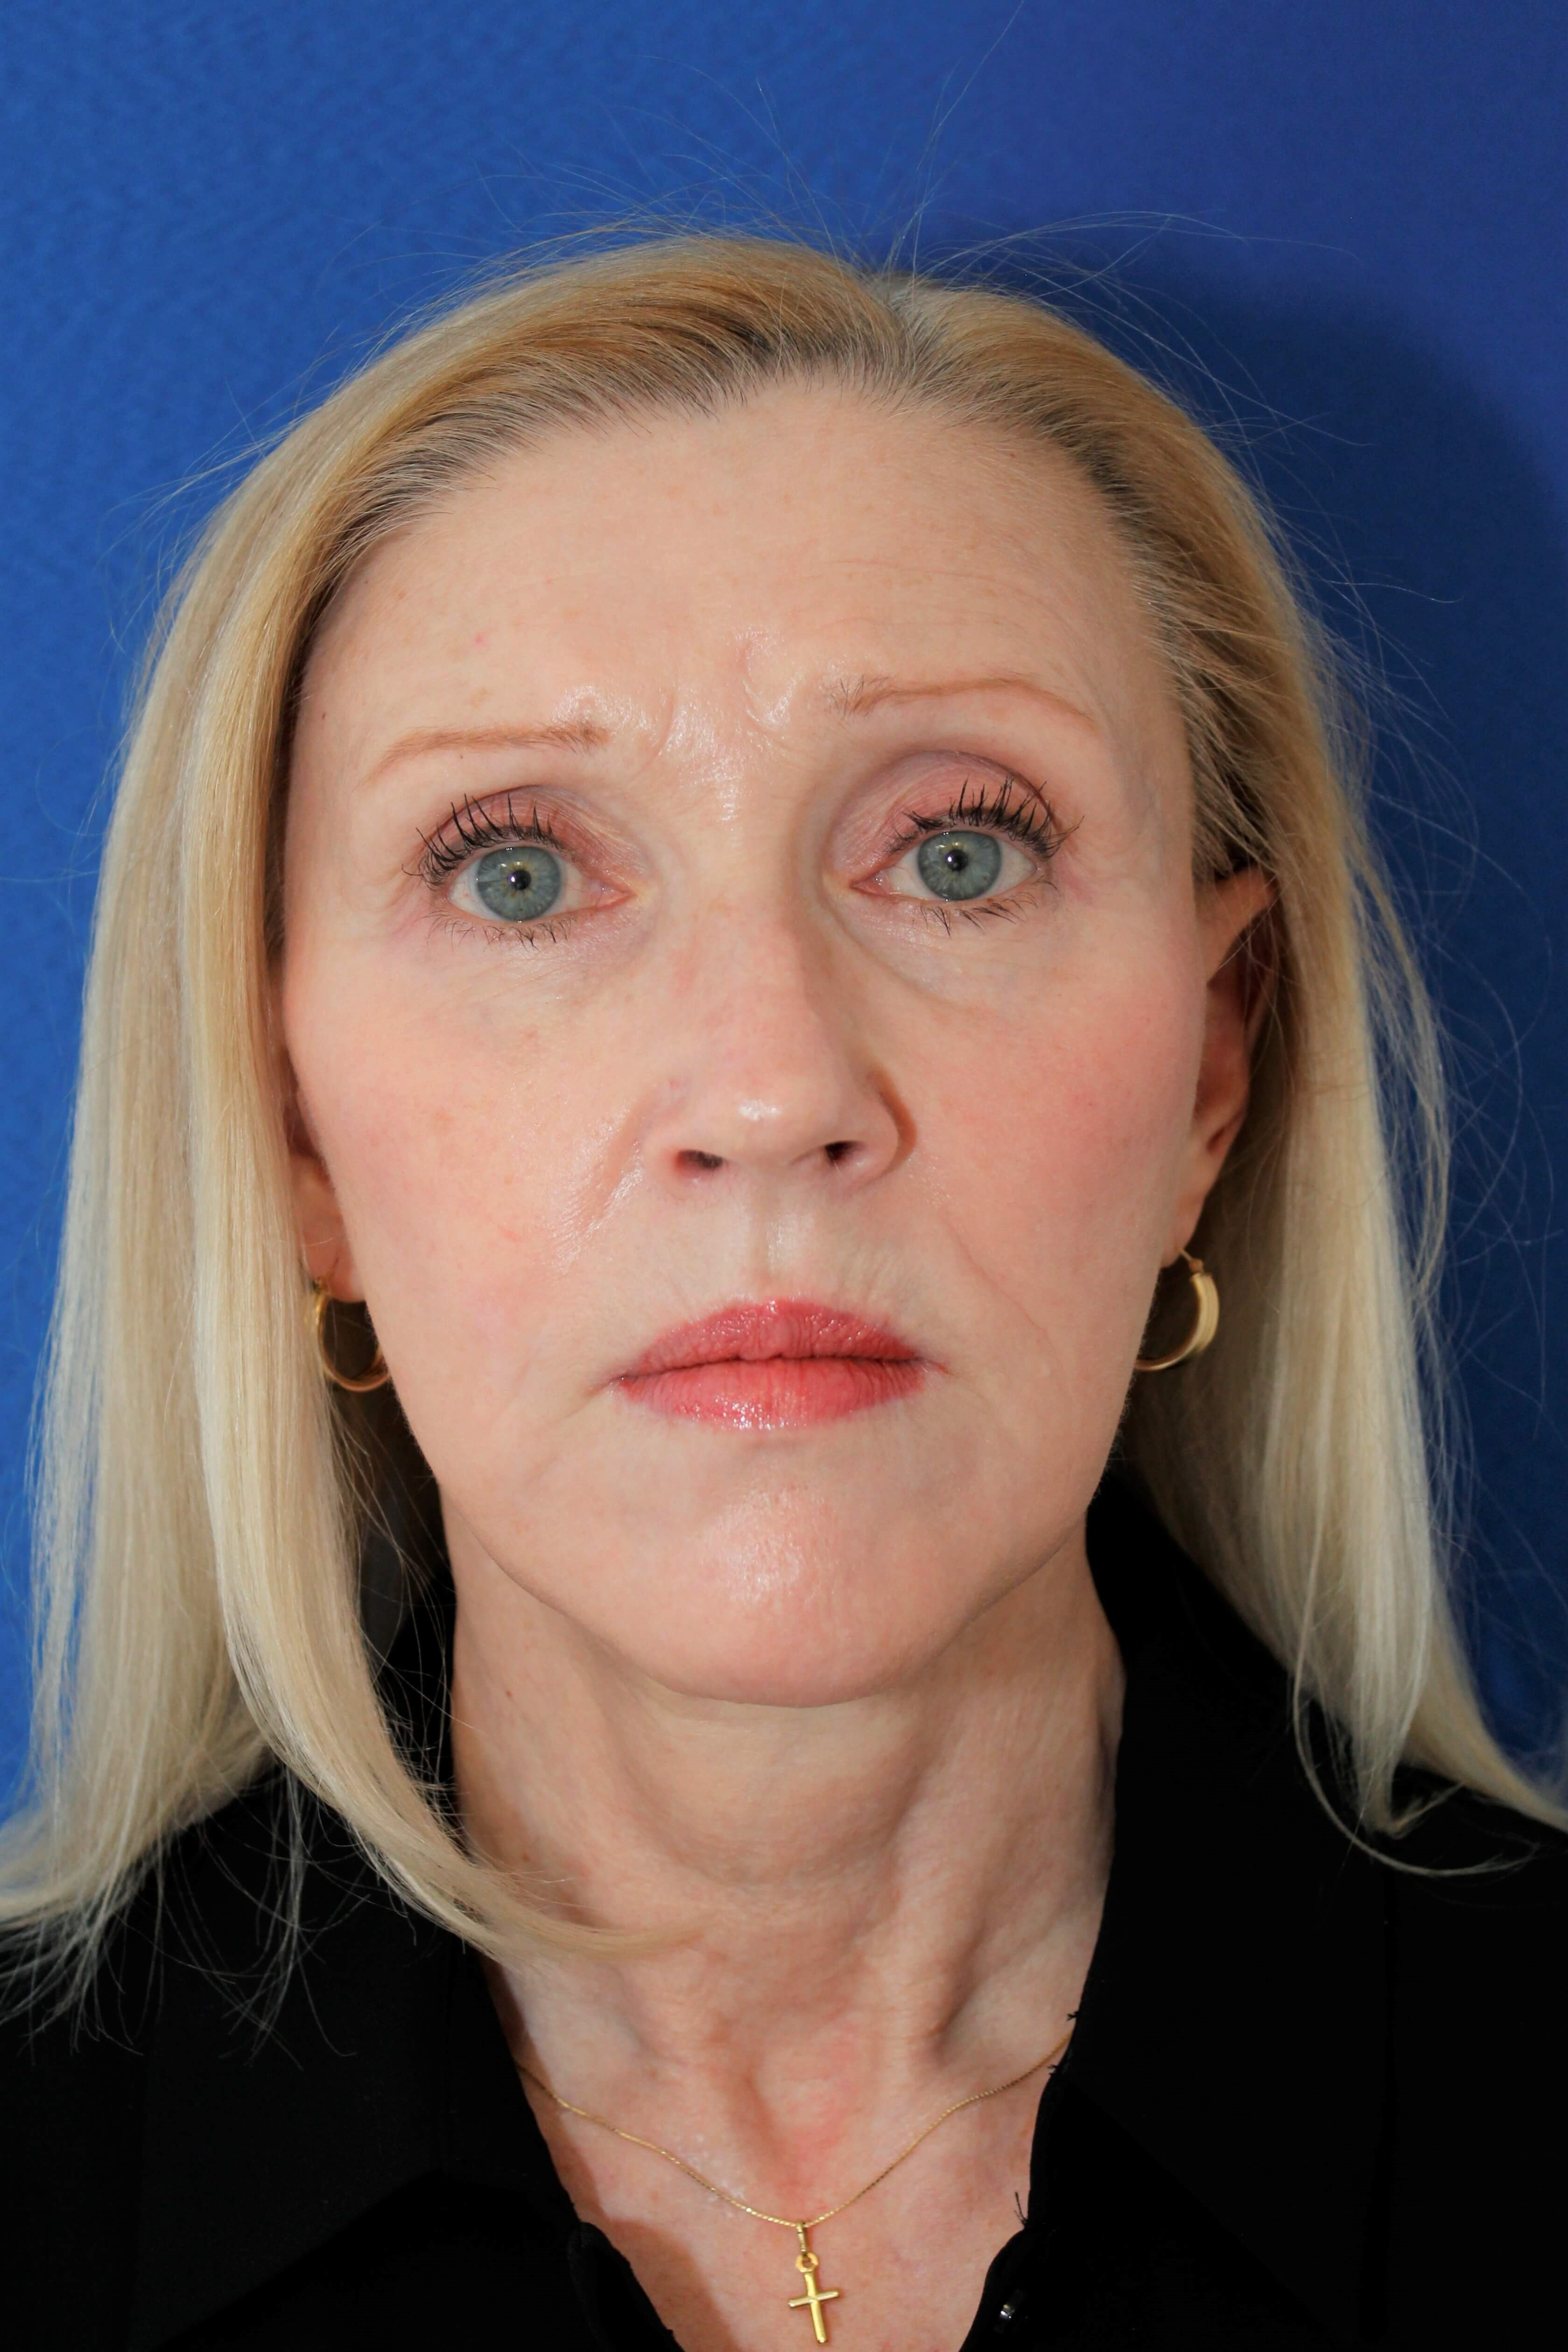 Facelift, lower eyelid surgery After